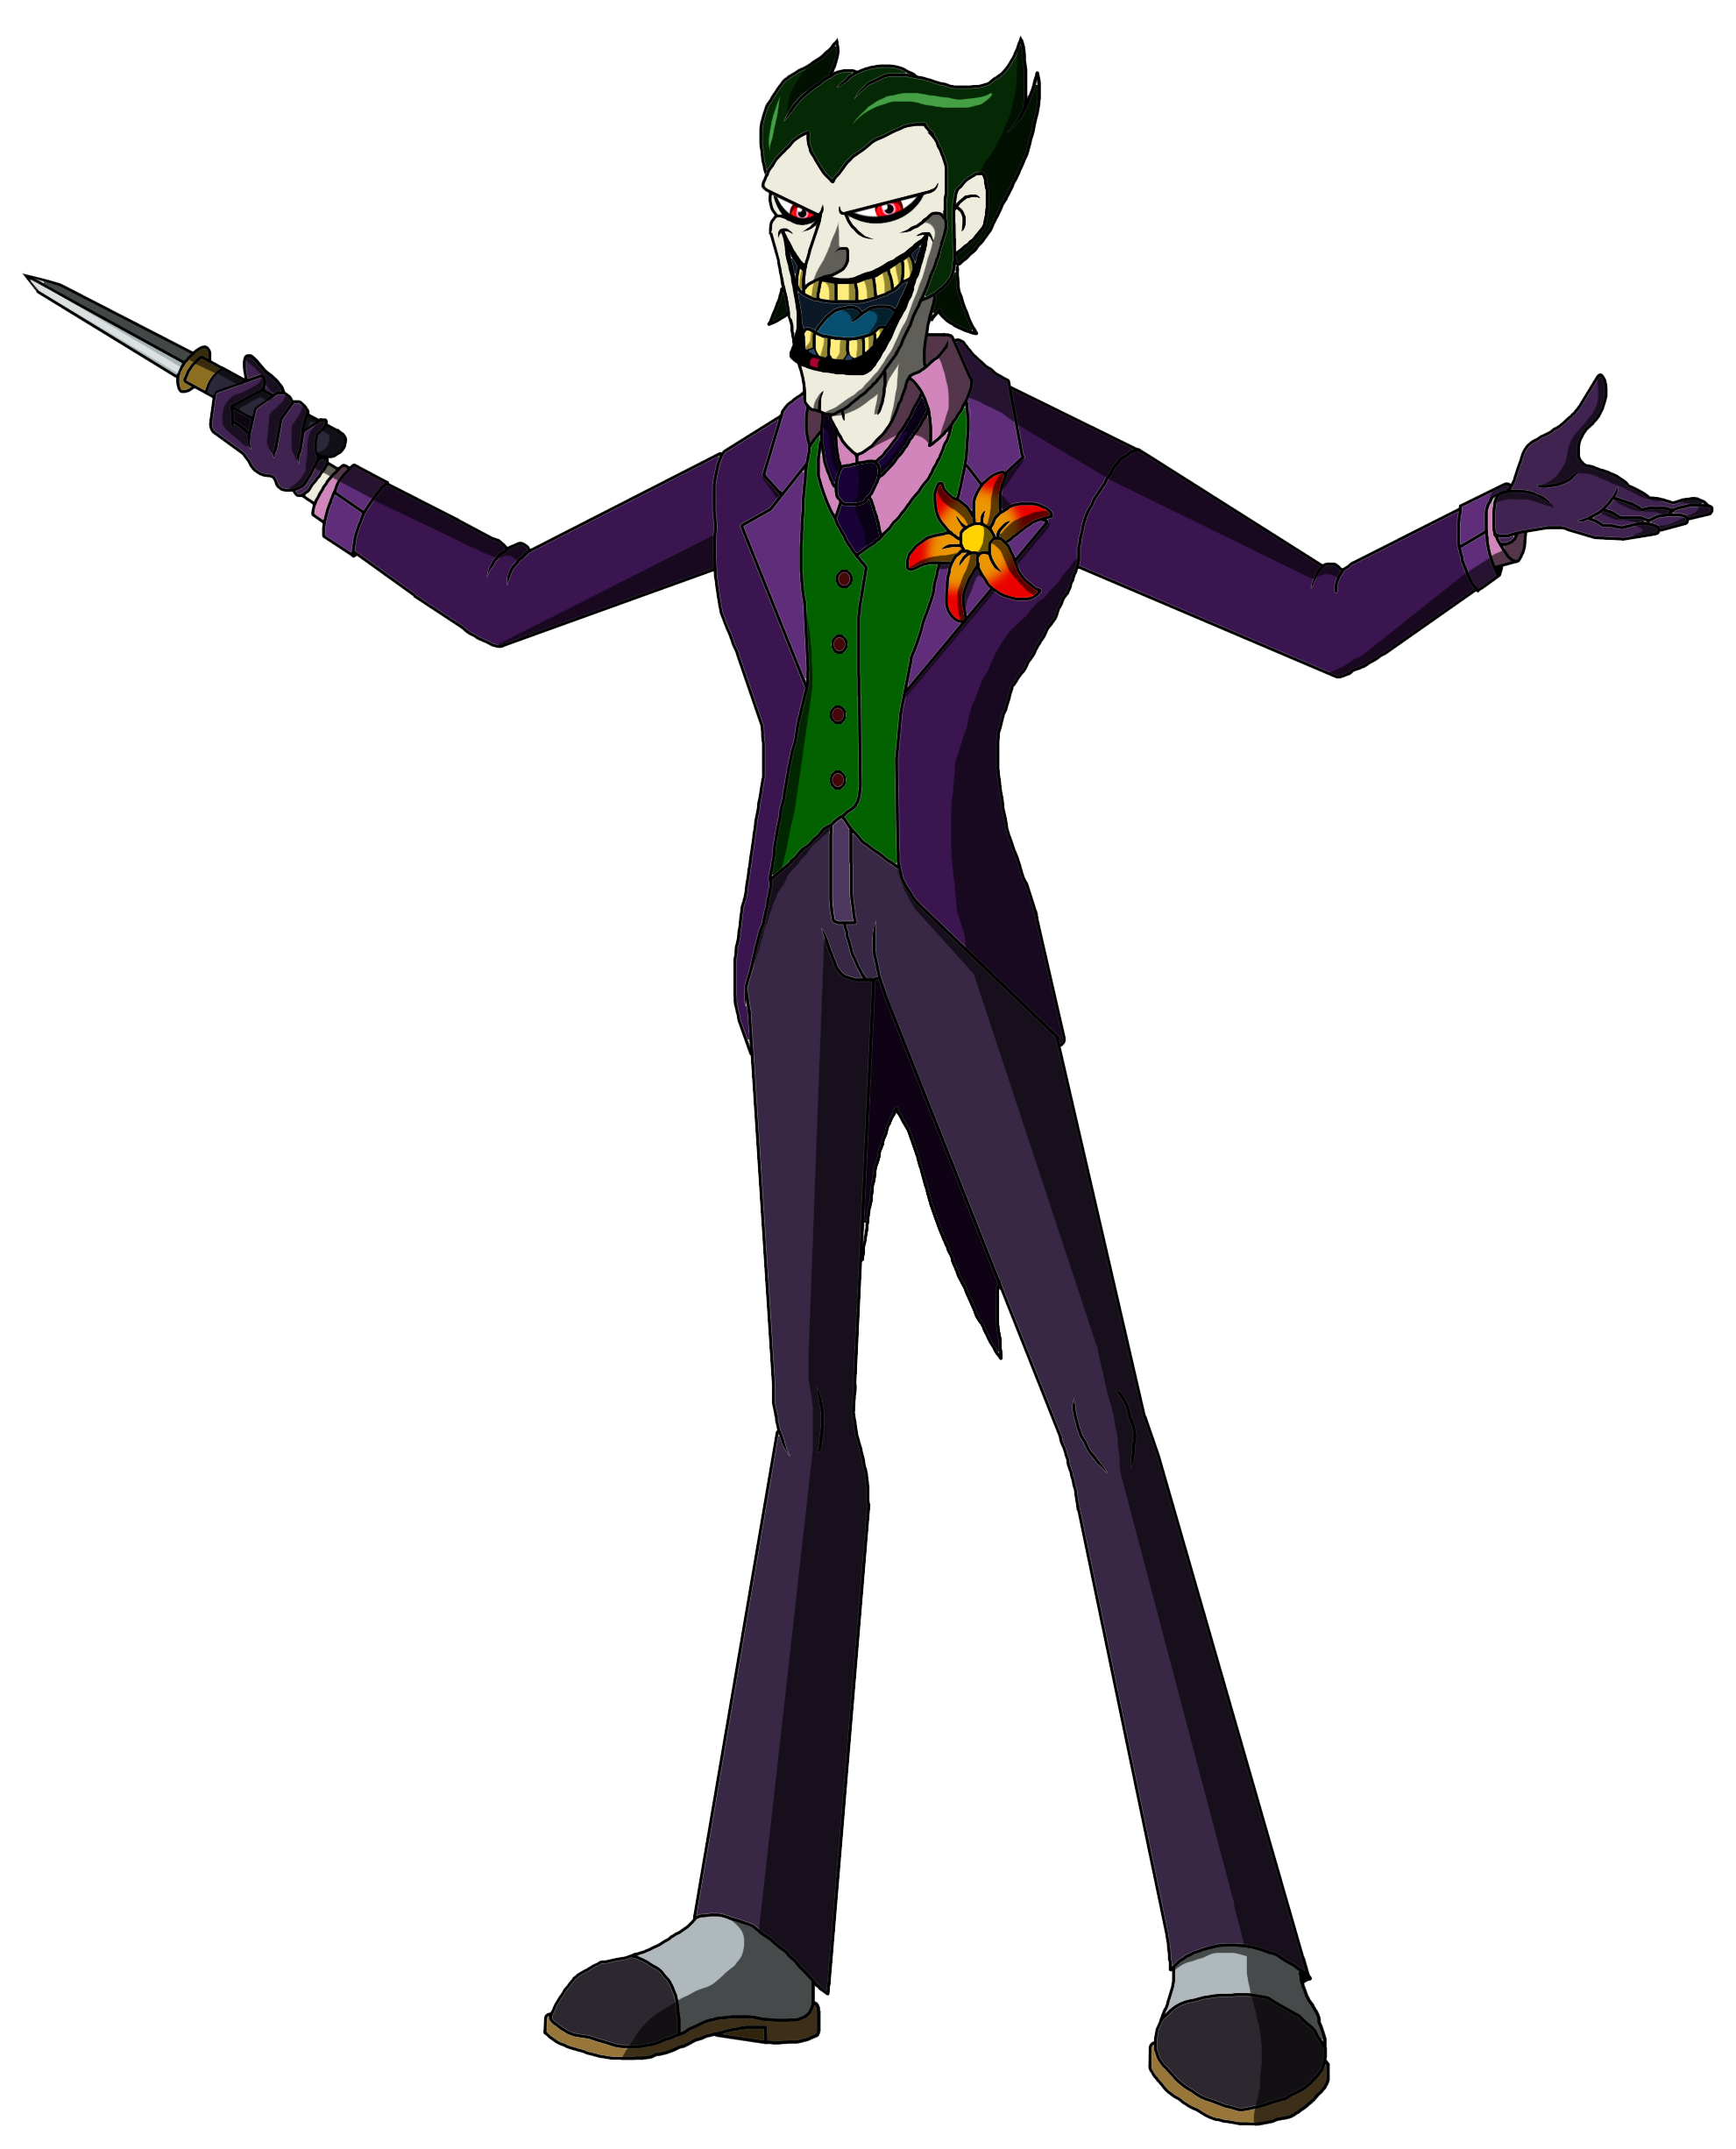 Batman Rogues 2019 The Joker By Moheart7 On Deviantart